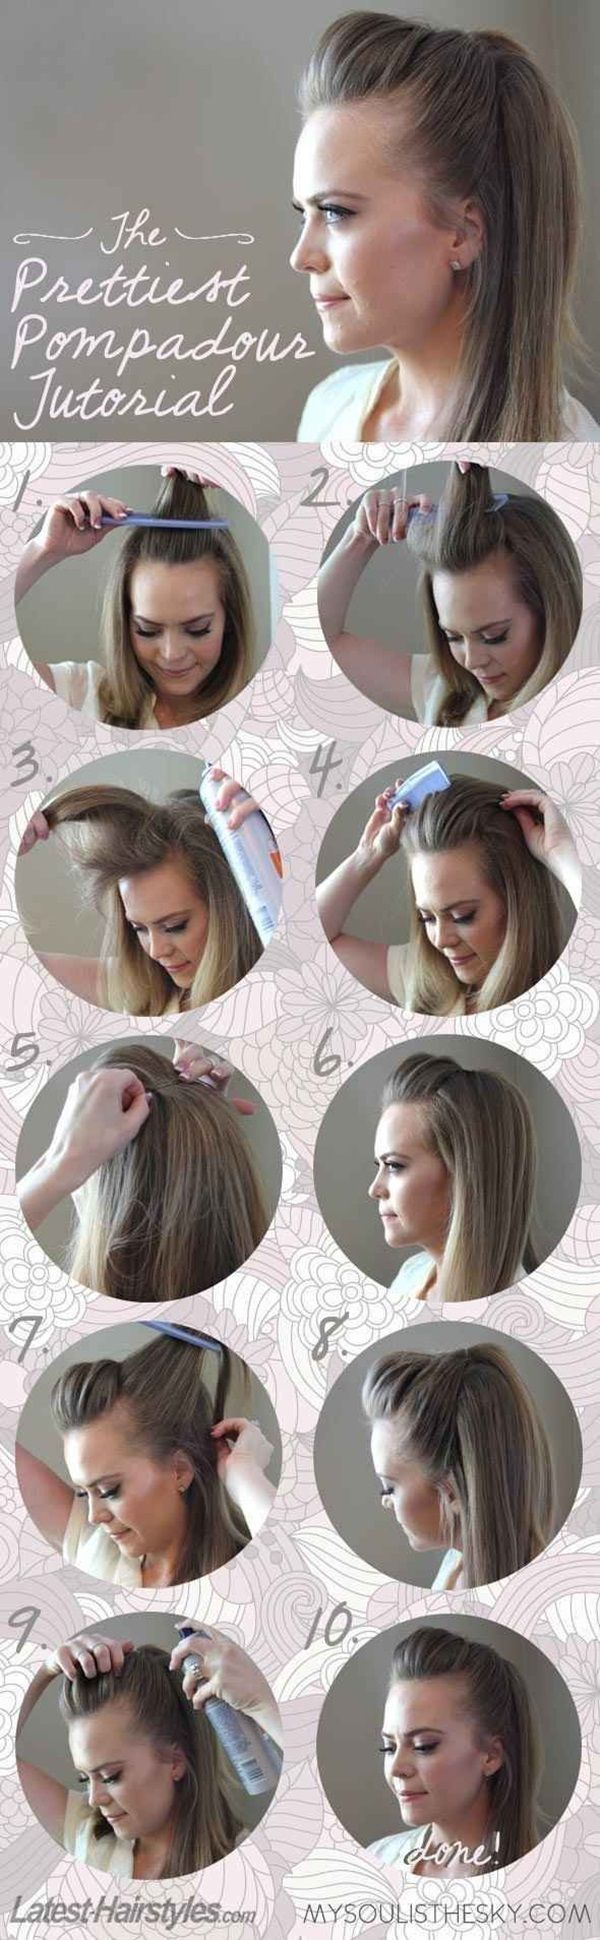 Superb 1000 Ideas About Quick Hairstyles On Pinterest Quick Hairstyles Short Hairstyles Gunalazisus